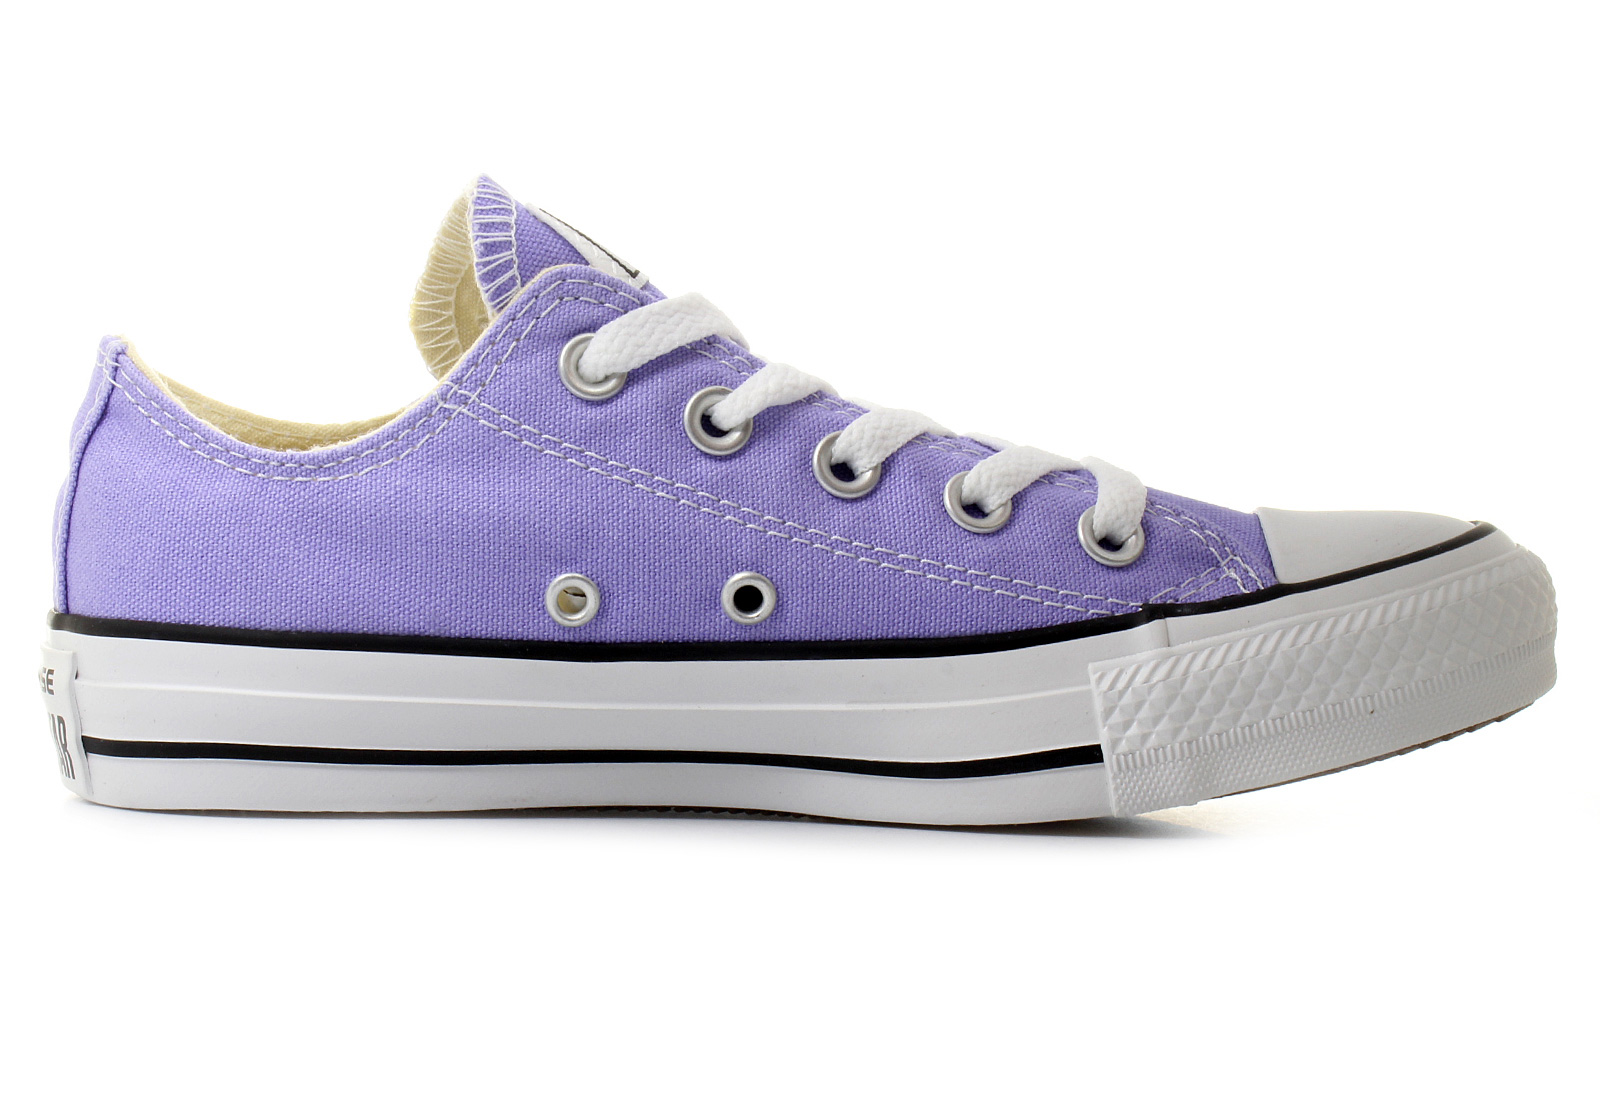 6dd09a1829 Converse Tenisky - Chuck Taylor All Star Seasonal Ox - 142375c ...